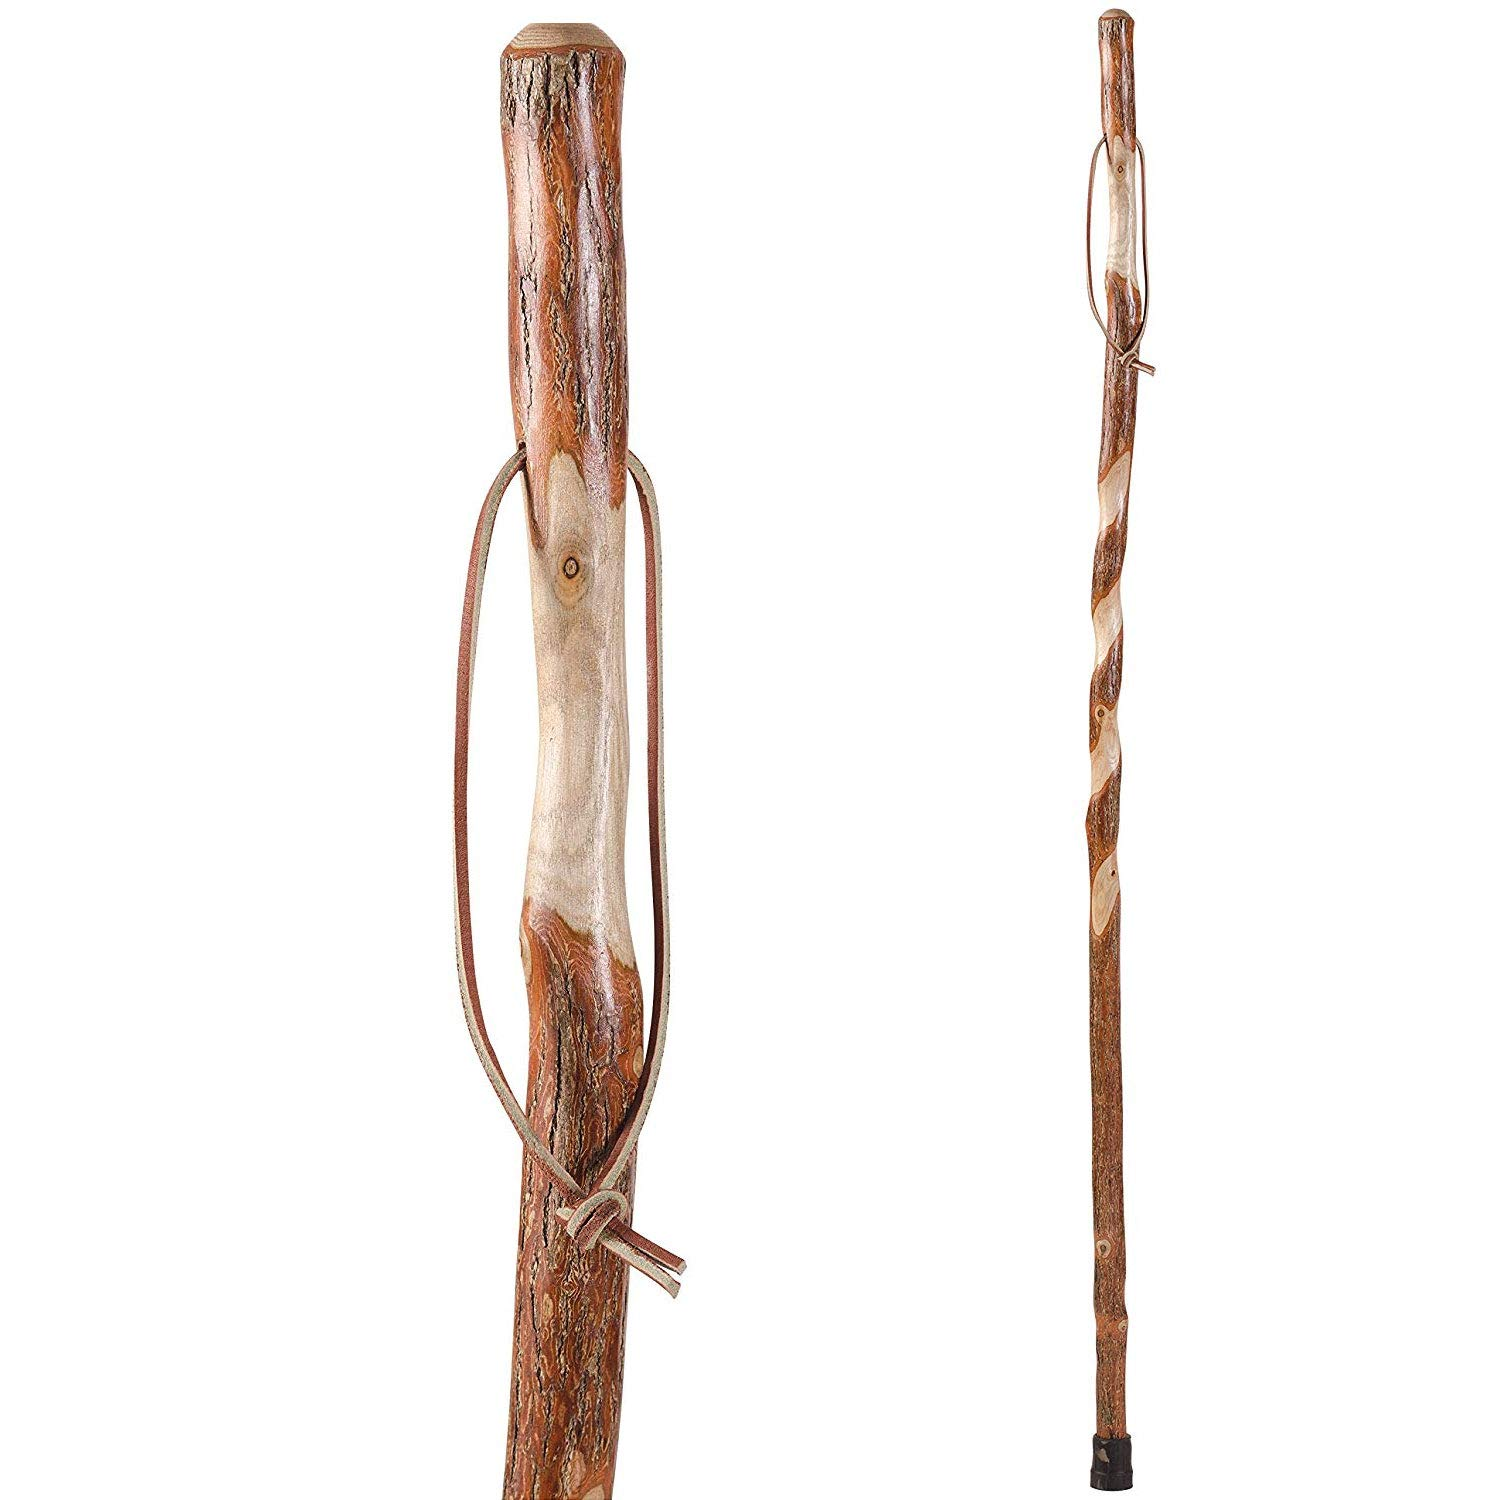 Brazos 41 Twisted Sassafras Handcrafted Wood Walking Stick Trekking Pole Cane,